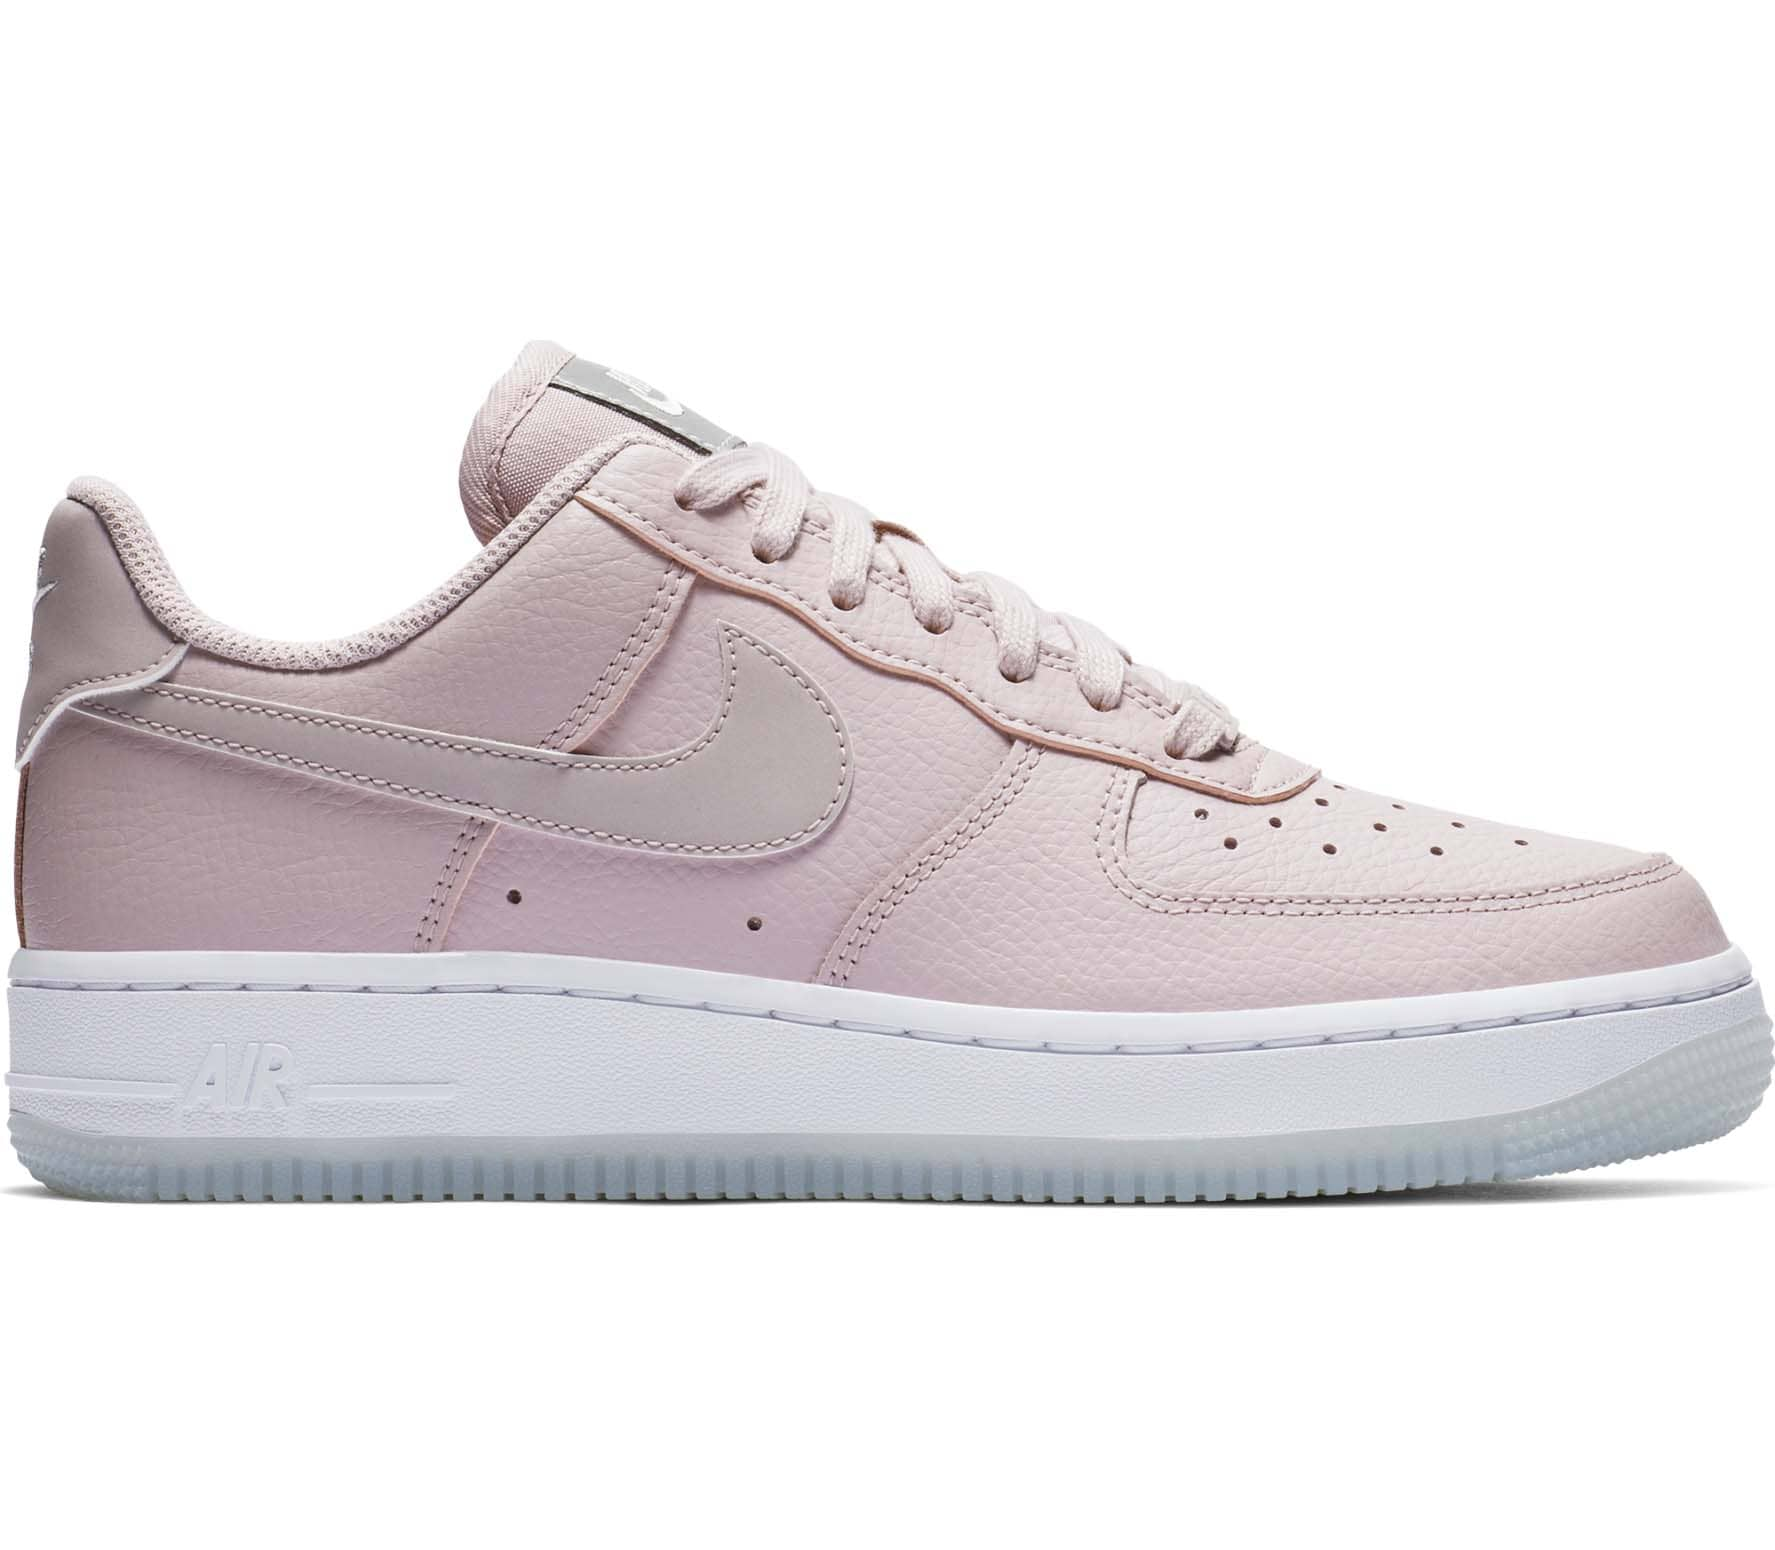 buy popular 4ea66 8cd89 Nike Sportswear Air Force 1  07 Essential women s sneaker (pink ... nike